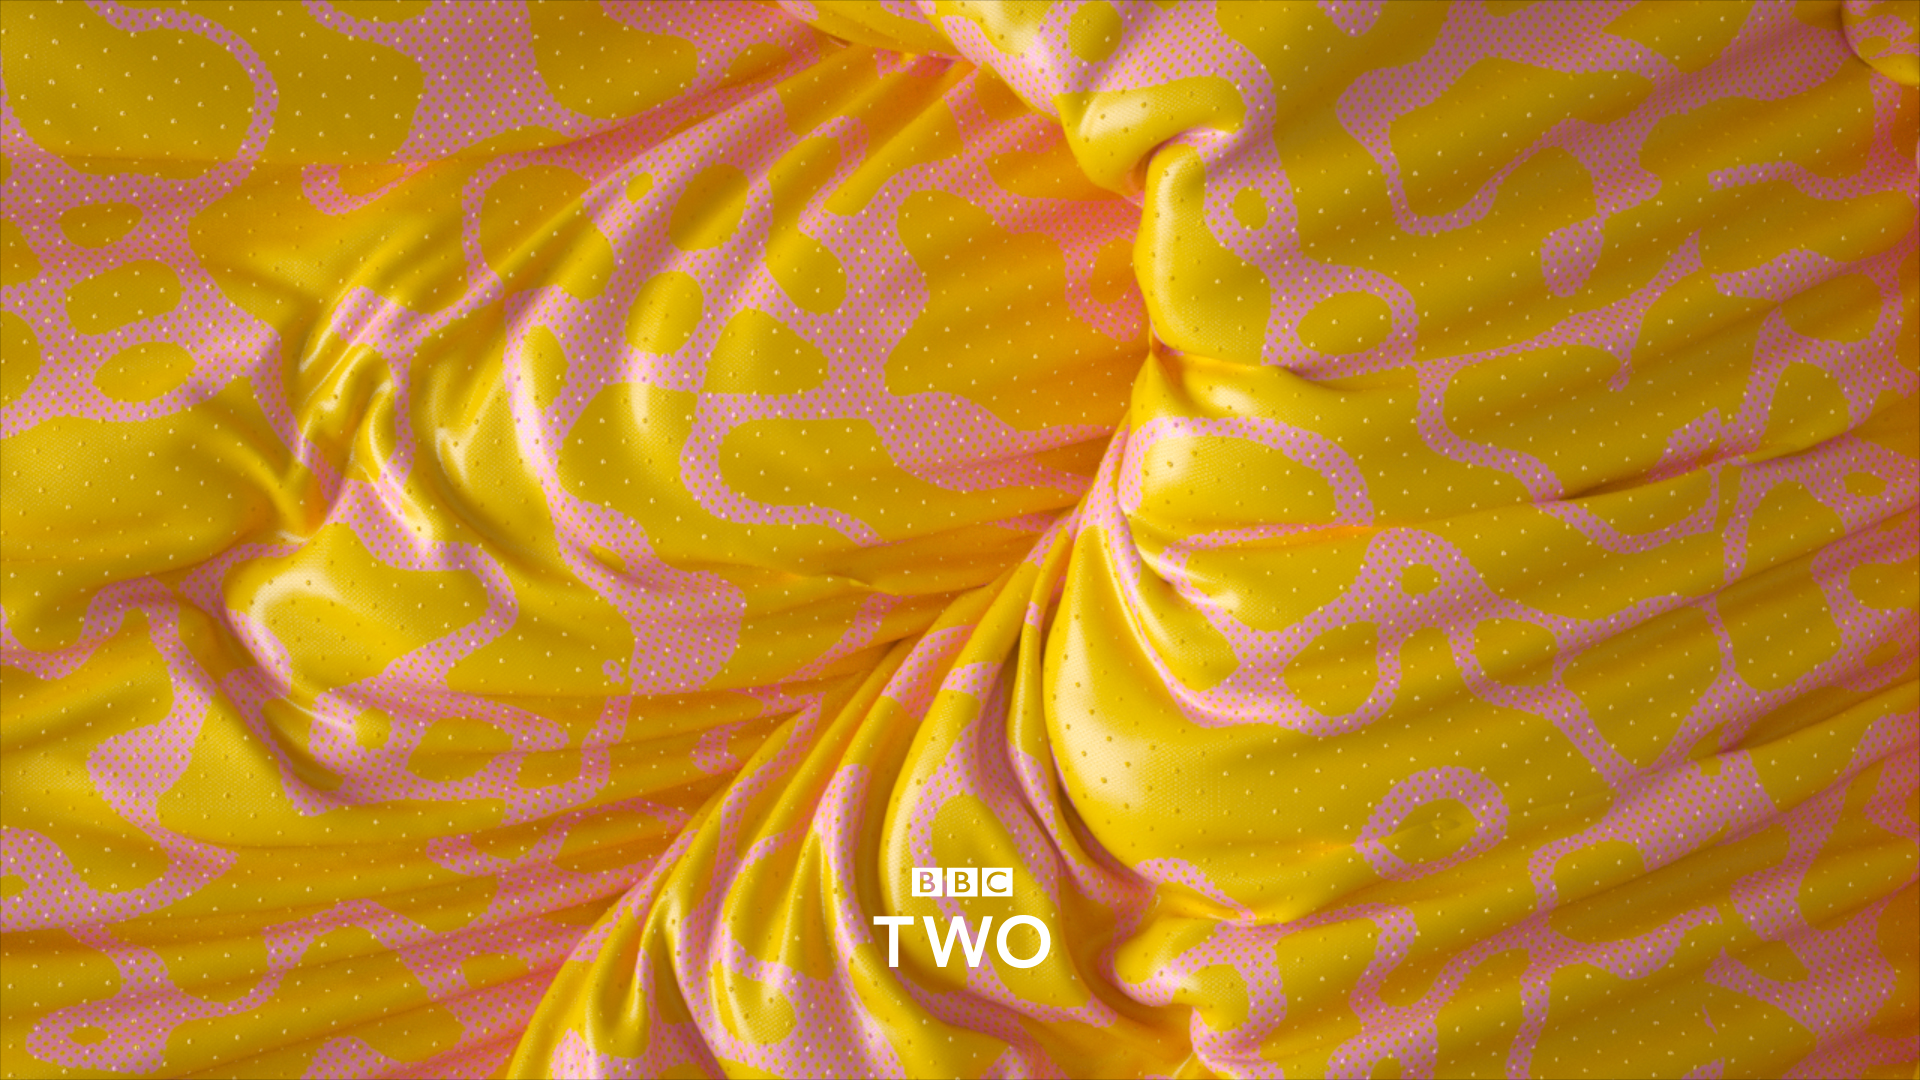 BBC_two_09